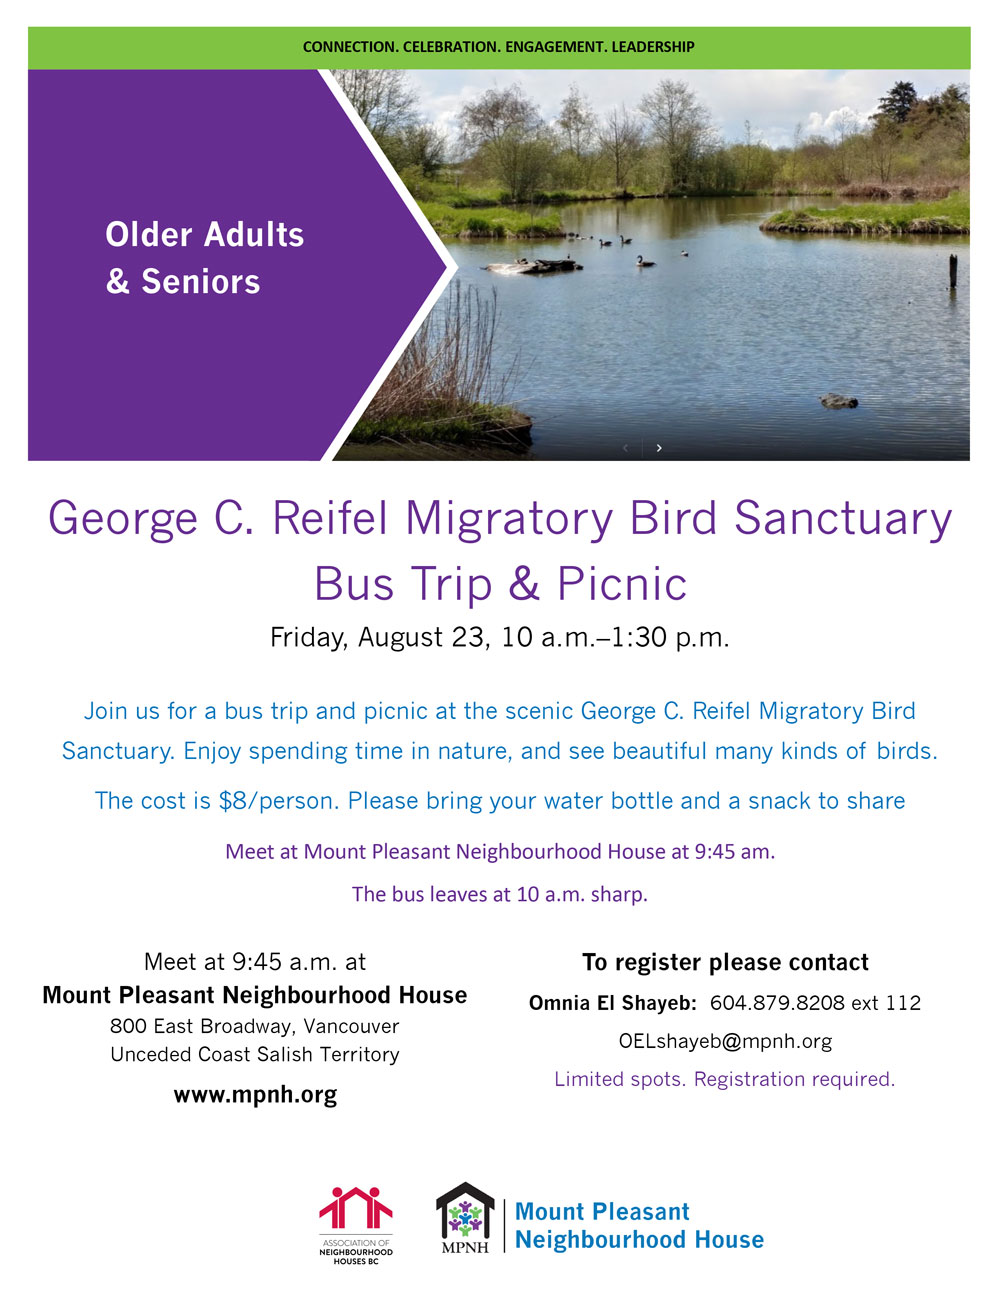 An image of the event poster with details, featuring a scenic image of birds swimming in a pond surrounded by greenery.